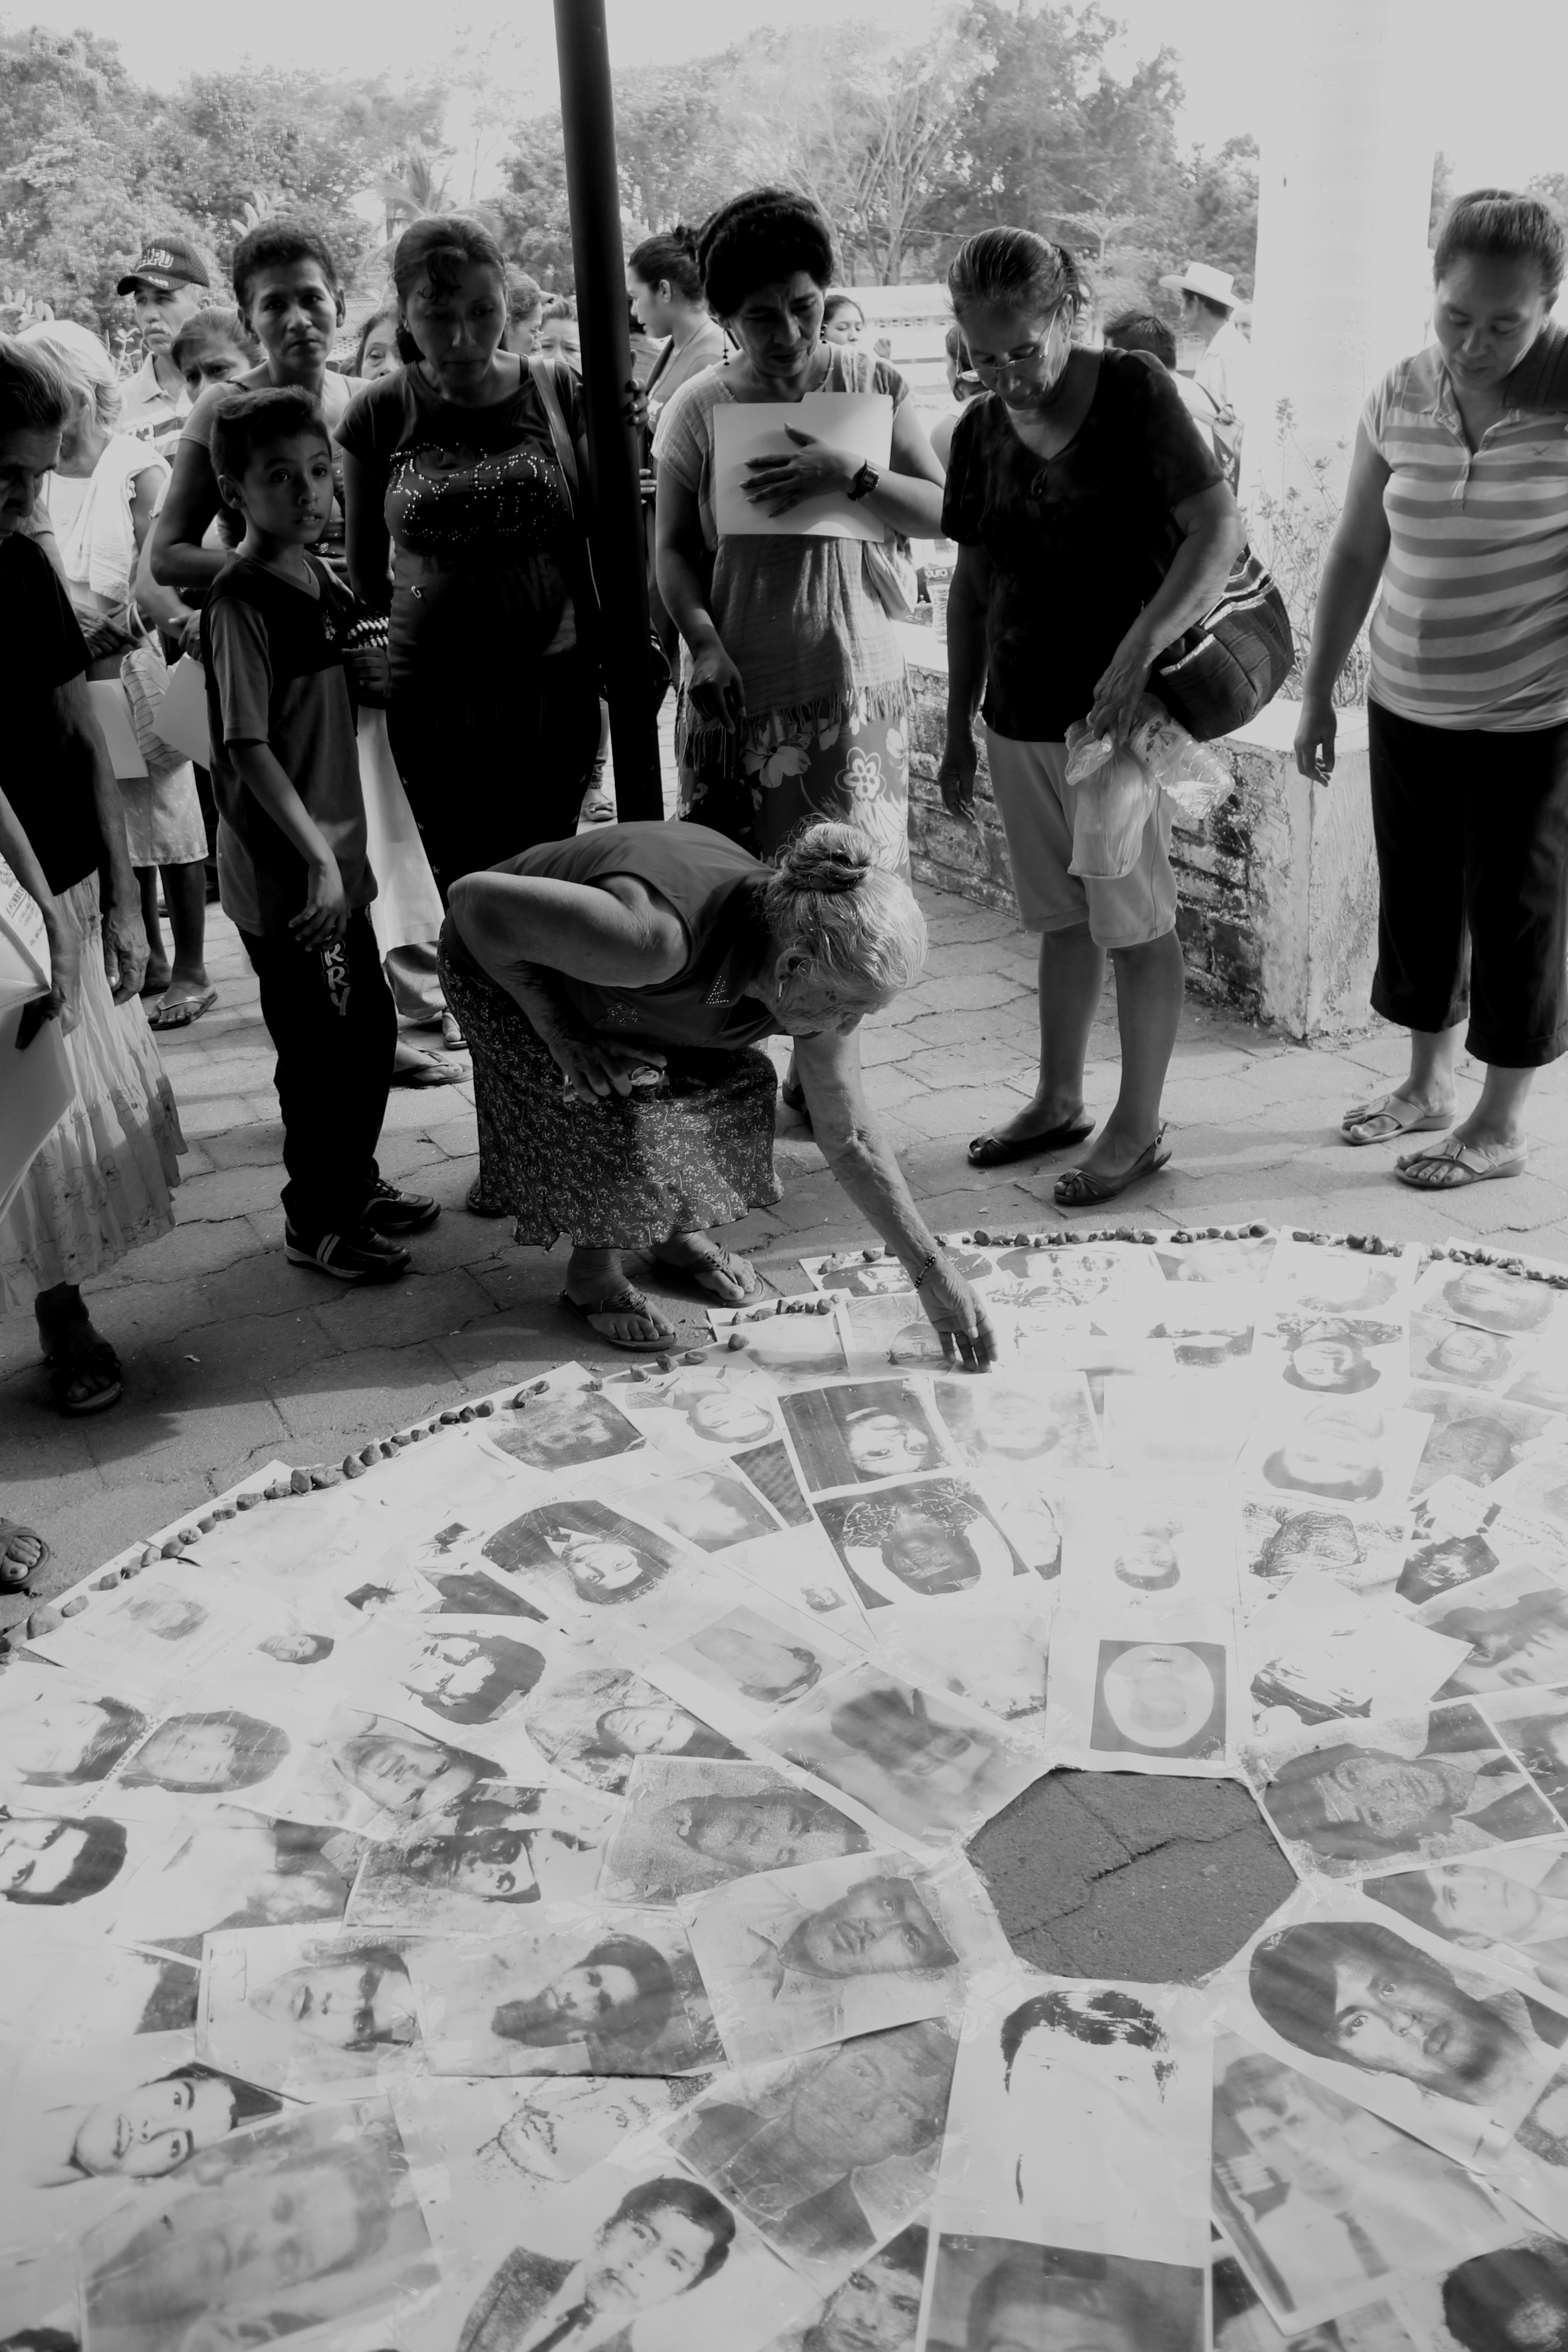 Black and white photgraph of a memorial in Mexico, with an elderly woman adding a picture